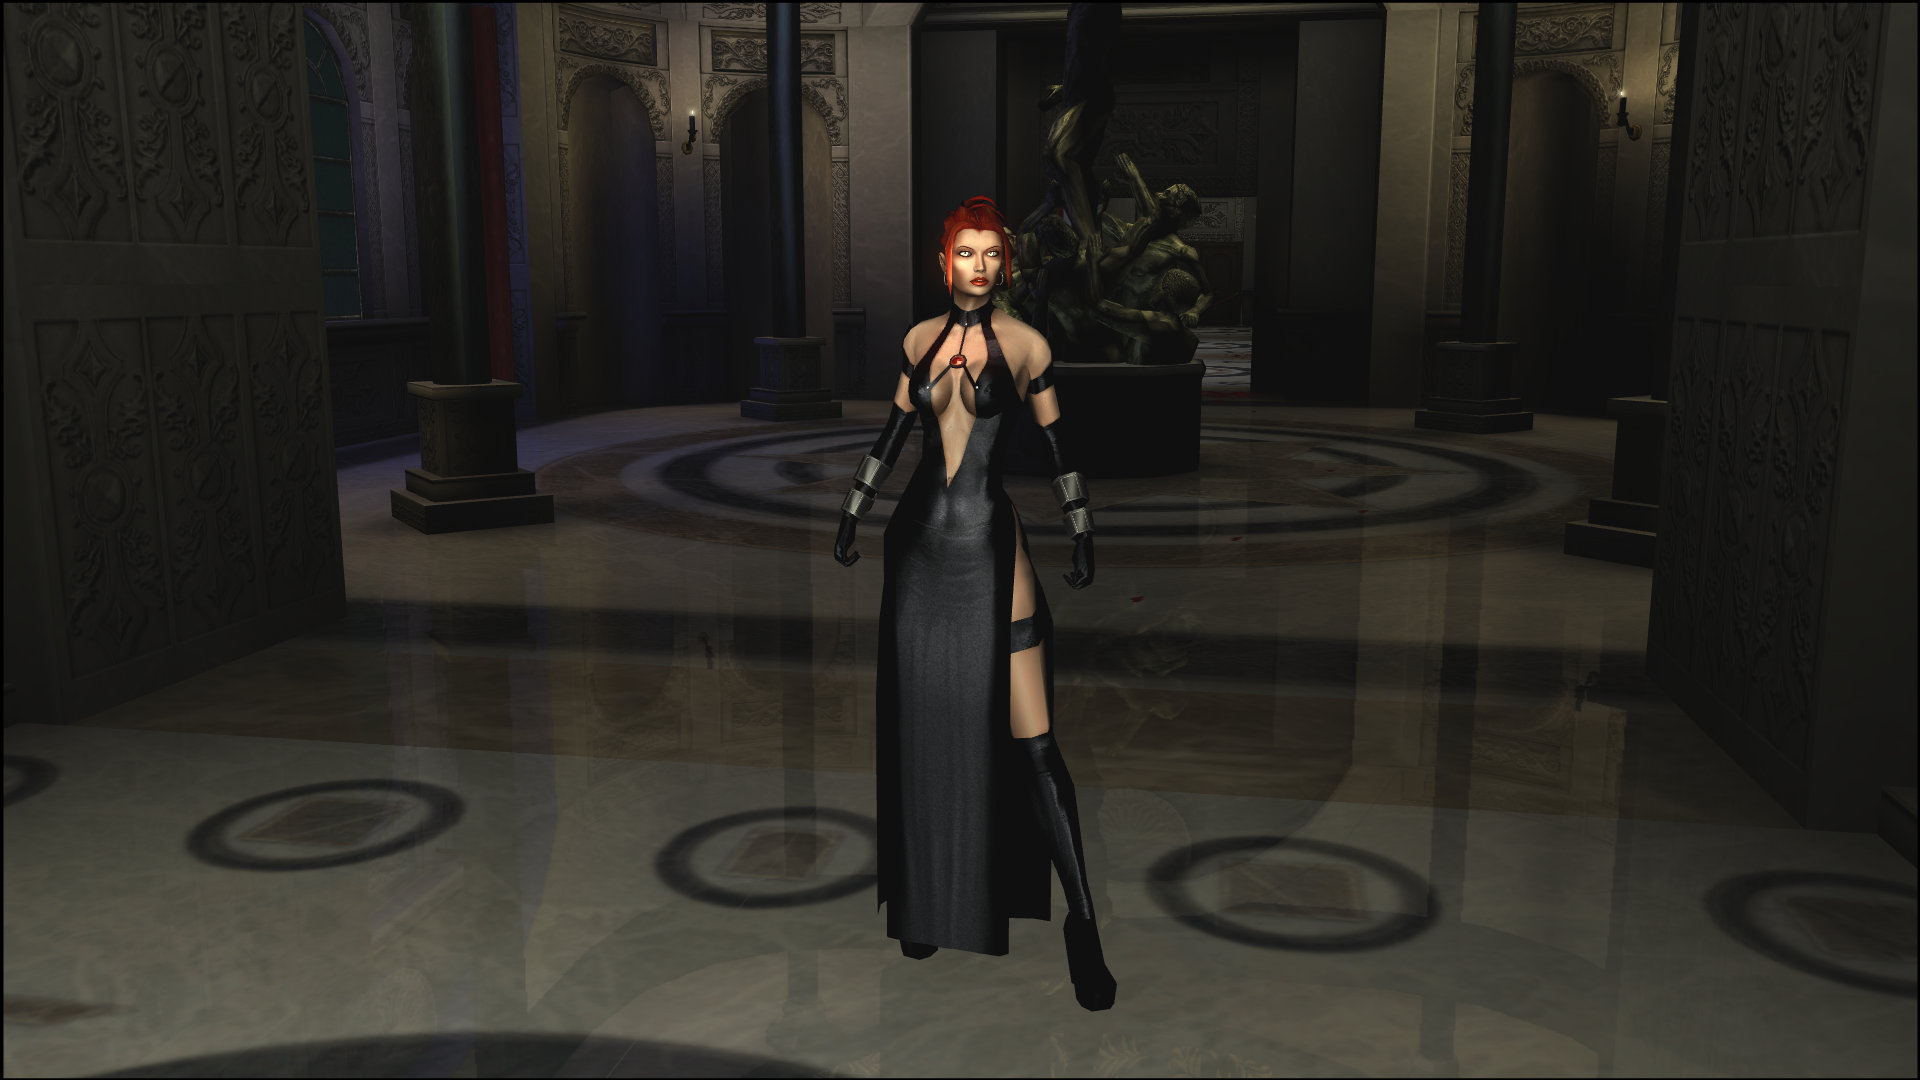 http://images3.wikia.nocookie.net/__cb20130817195242/hudfreegaming/images/9/9f/Bloodrayne2-01.jpg